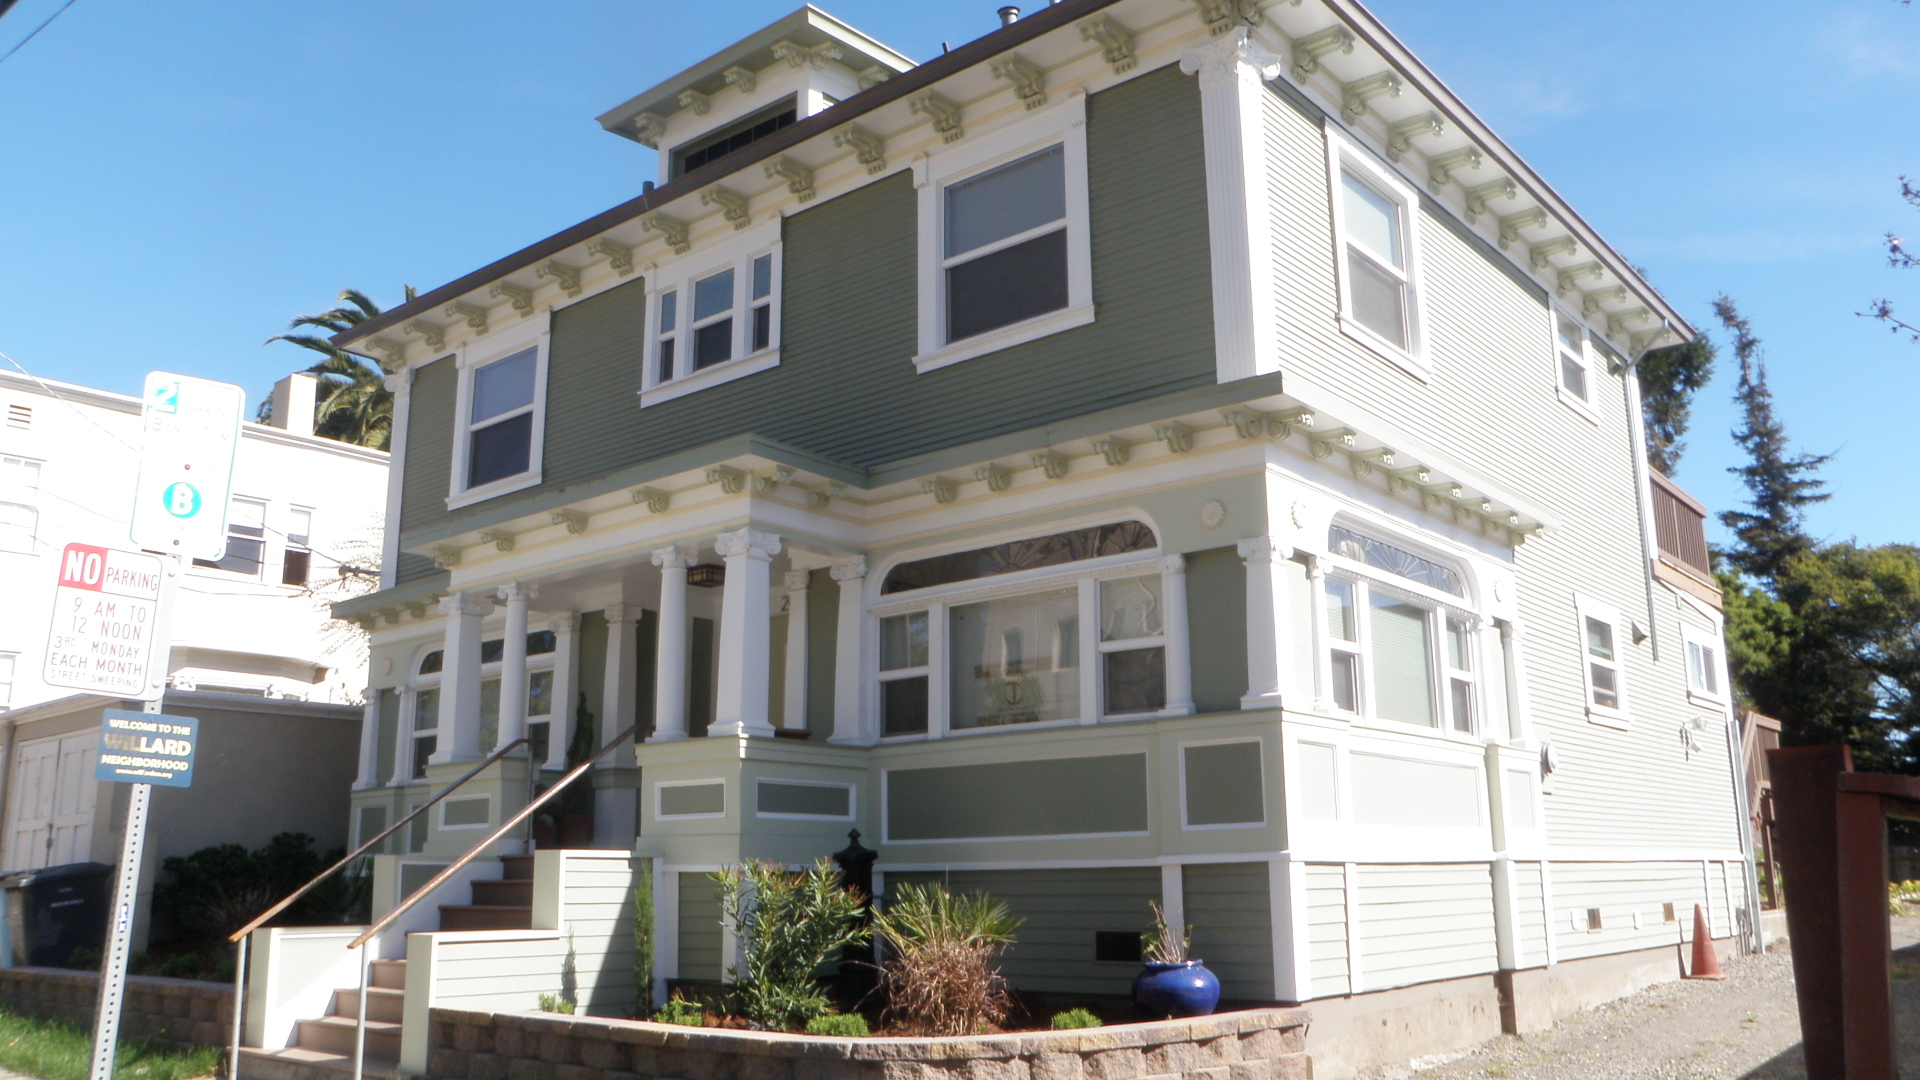 Residential Exterior Services: Exterior Residential Remodeling